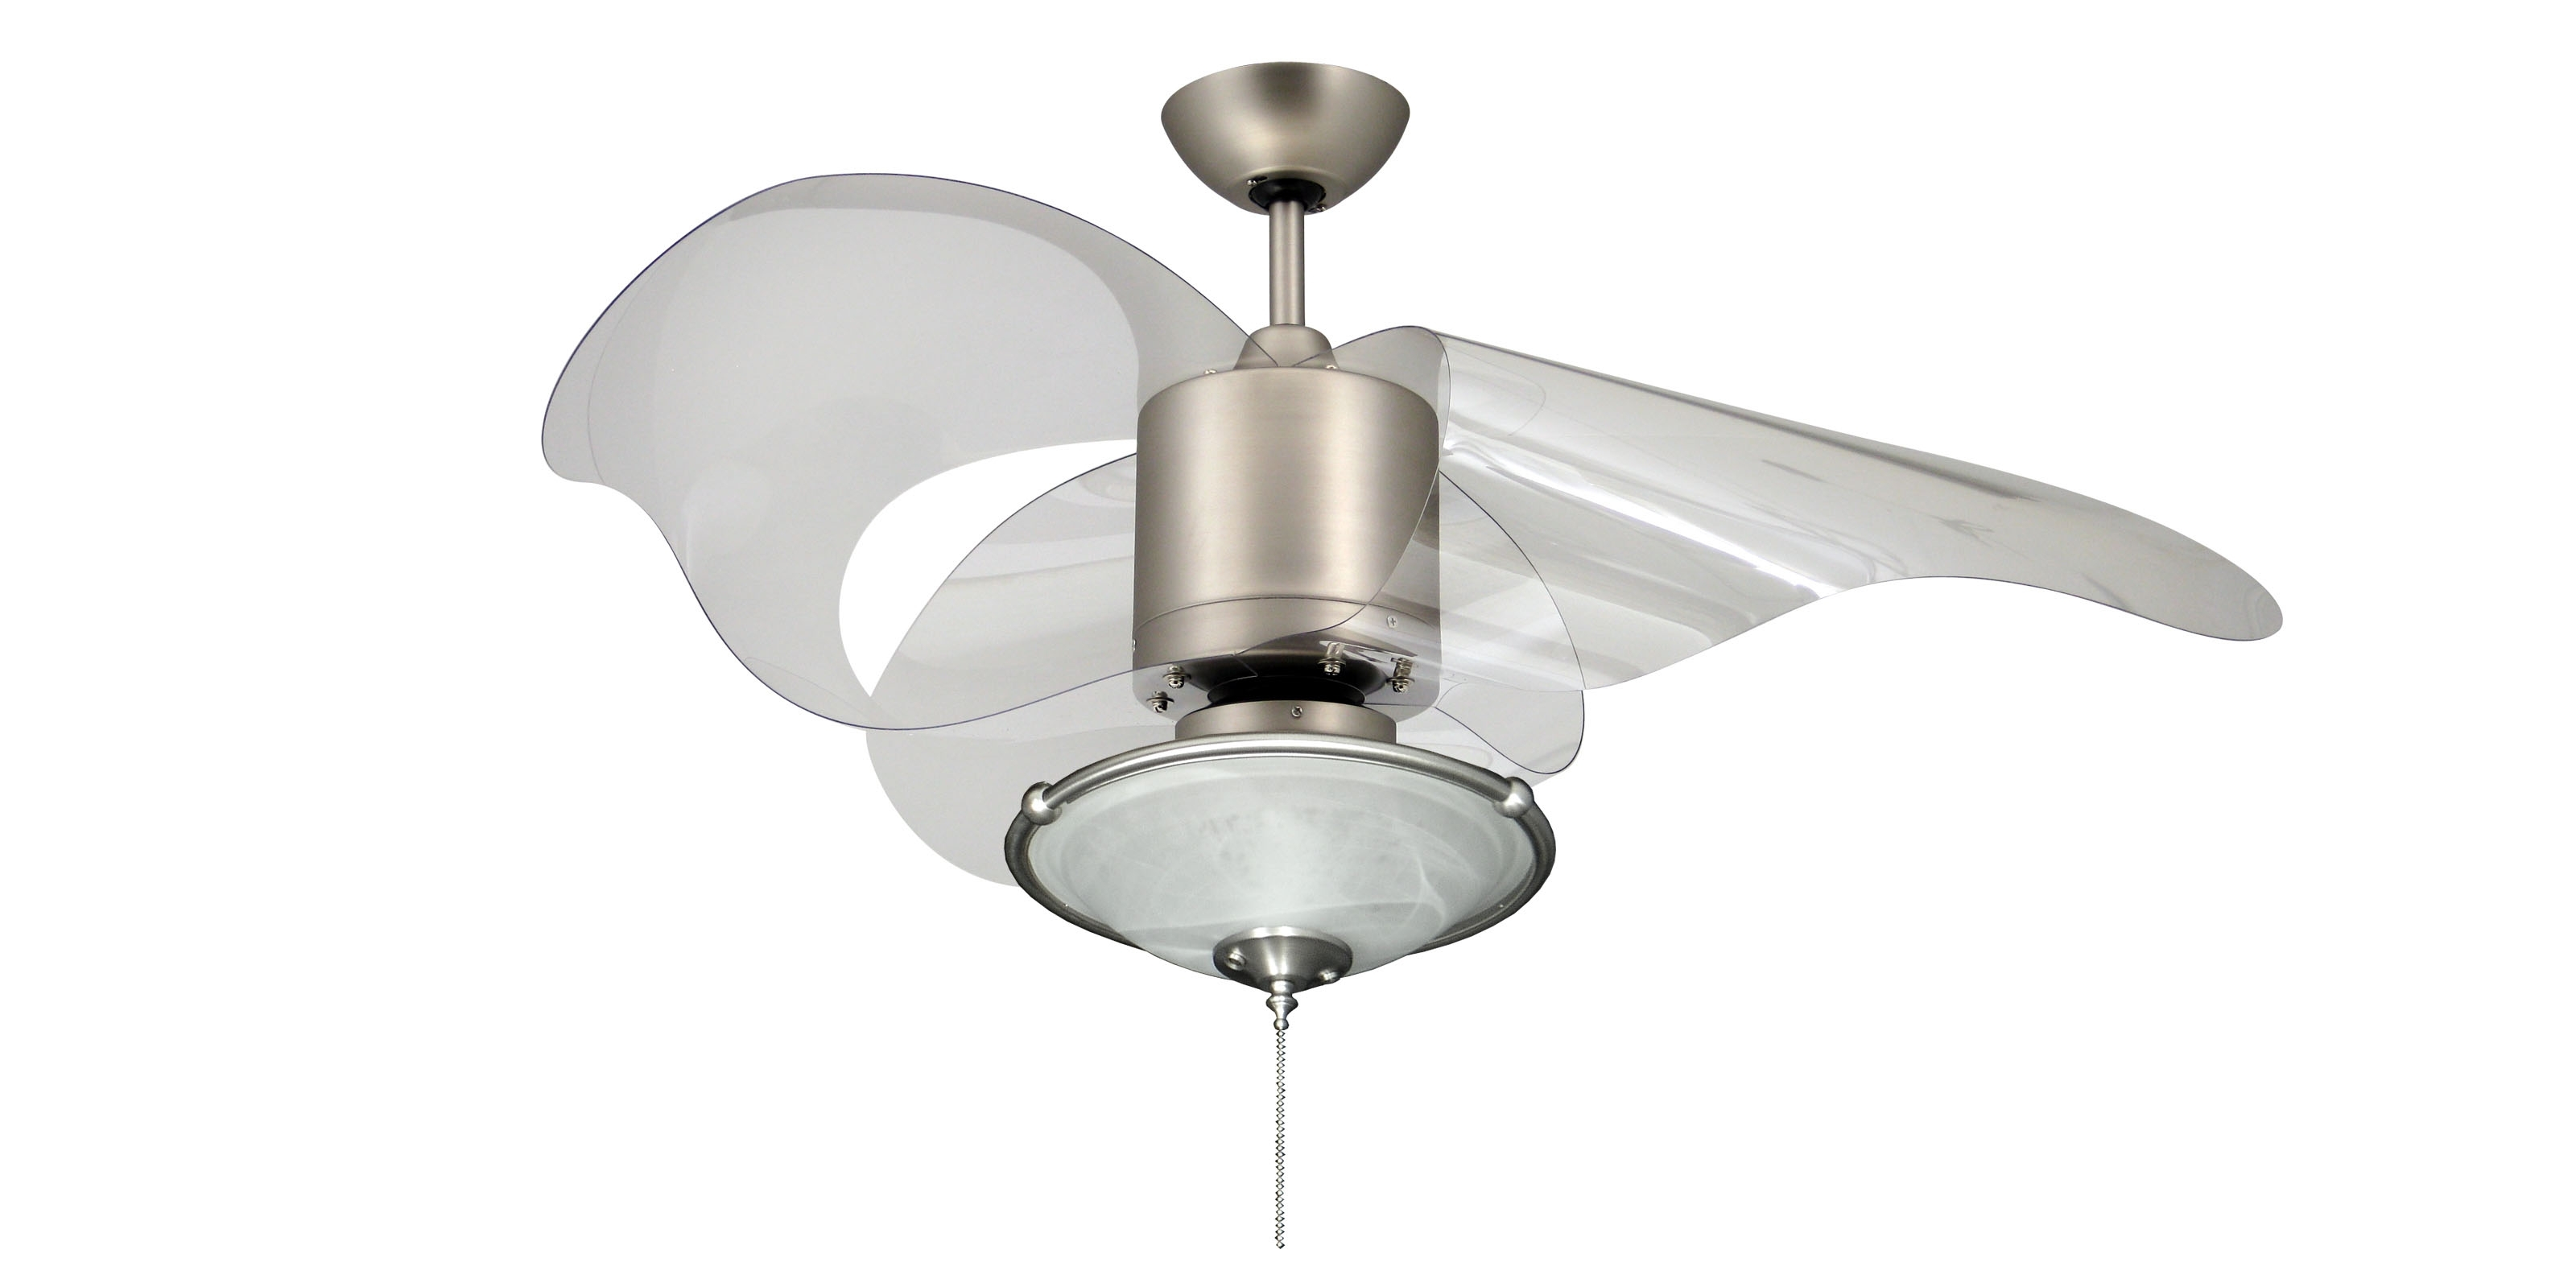 Unusual Ceiling Fans With Lights Ceiling Fans With Lights In Unusual Pertaining To 2019 Vertical Outdoor Ceiling Fans (View 5 of 20)